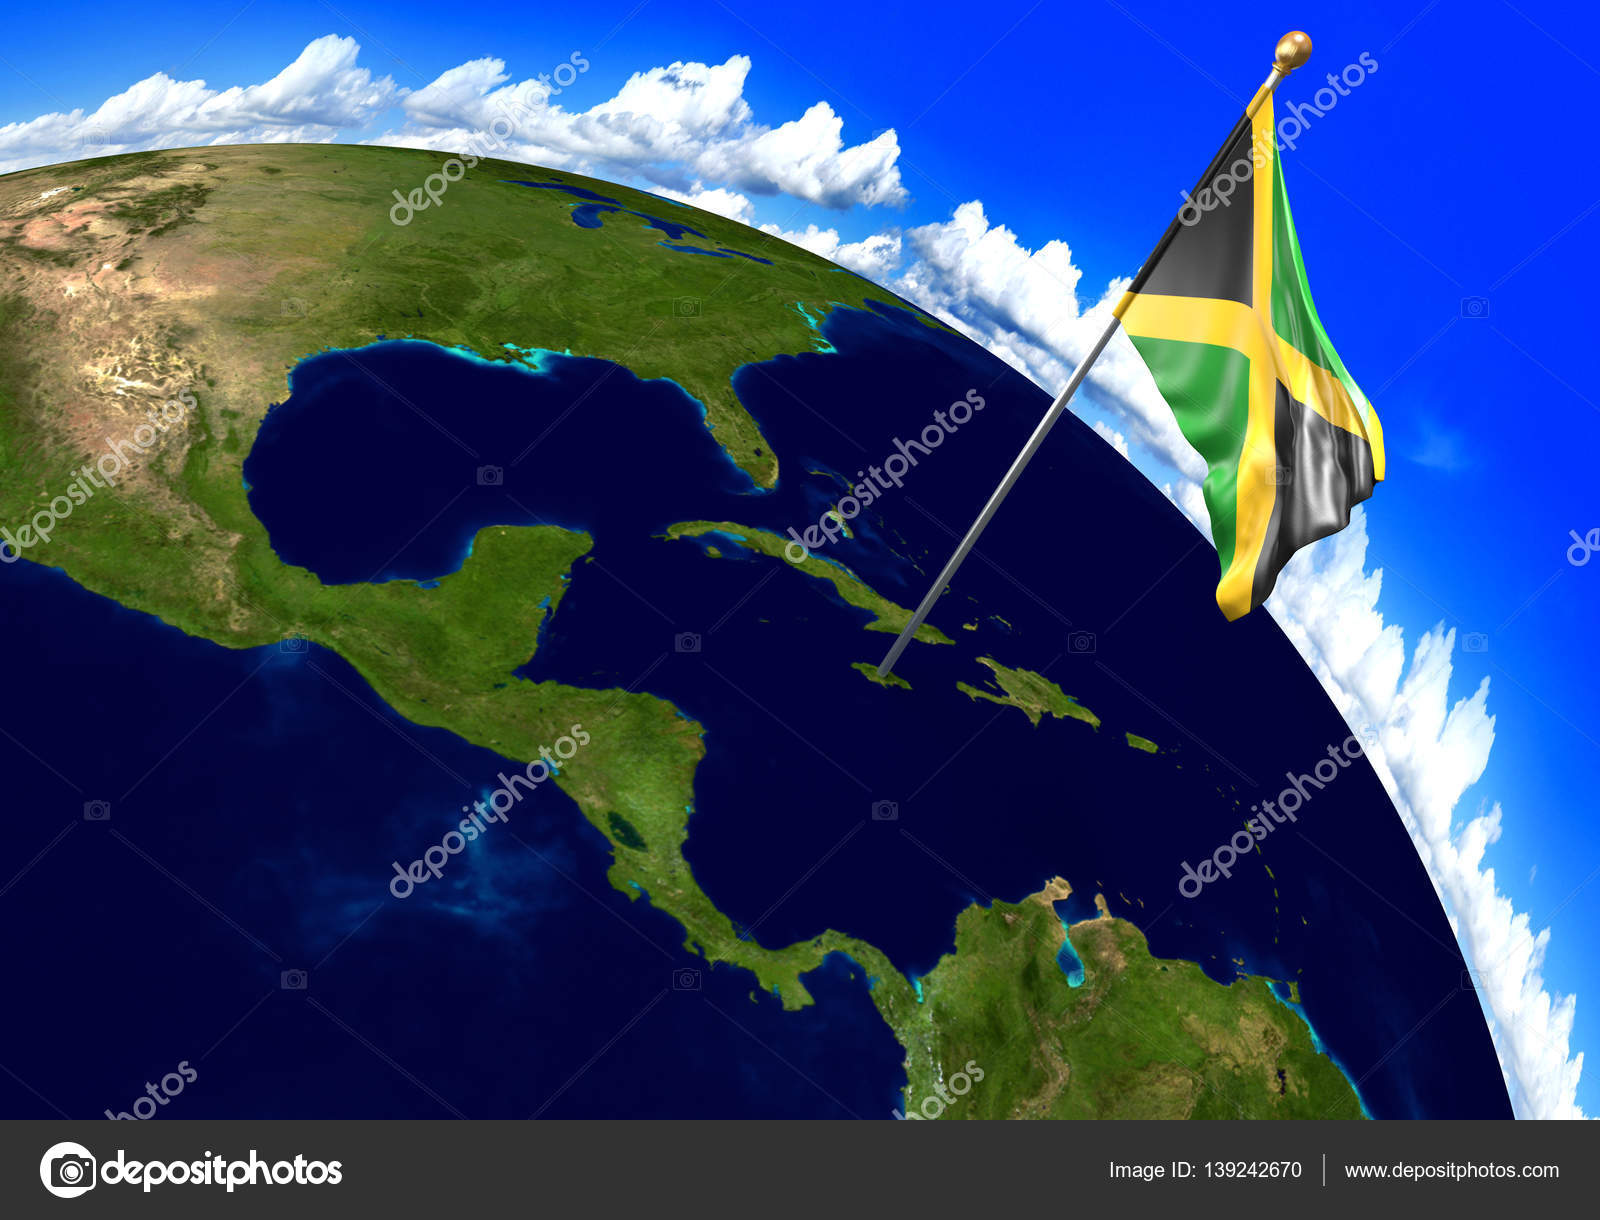 Jamaica national flag marking the country location on world map 3d 3d render of the national flag of jamaica over the geographic location of the country on a world map parts of this image furnished by nasa gumiabroncs